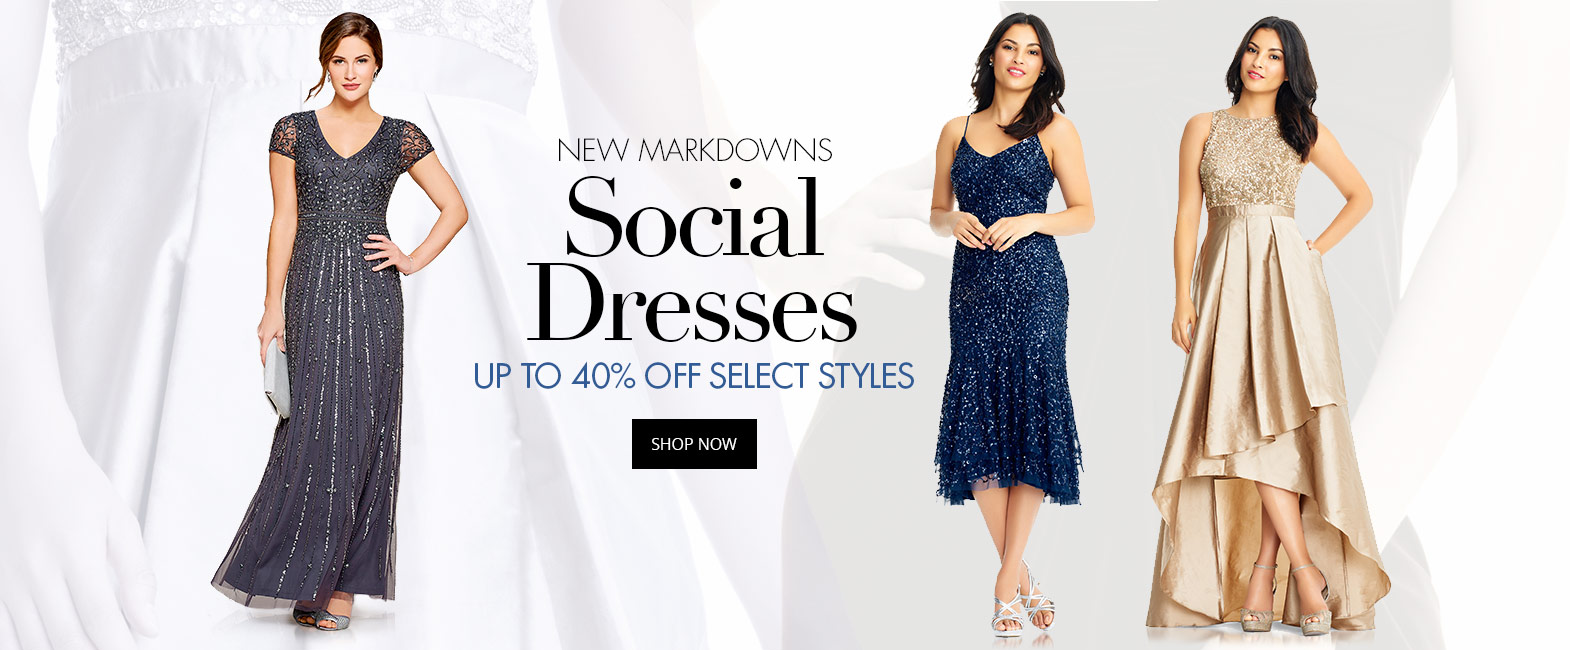 Up to 40% off select social dresses